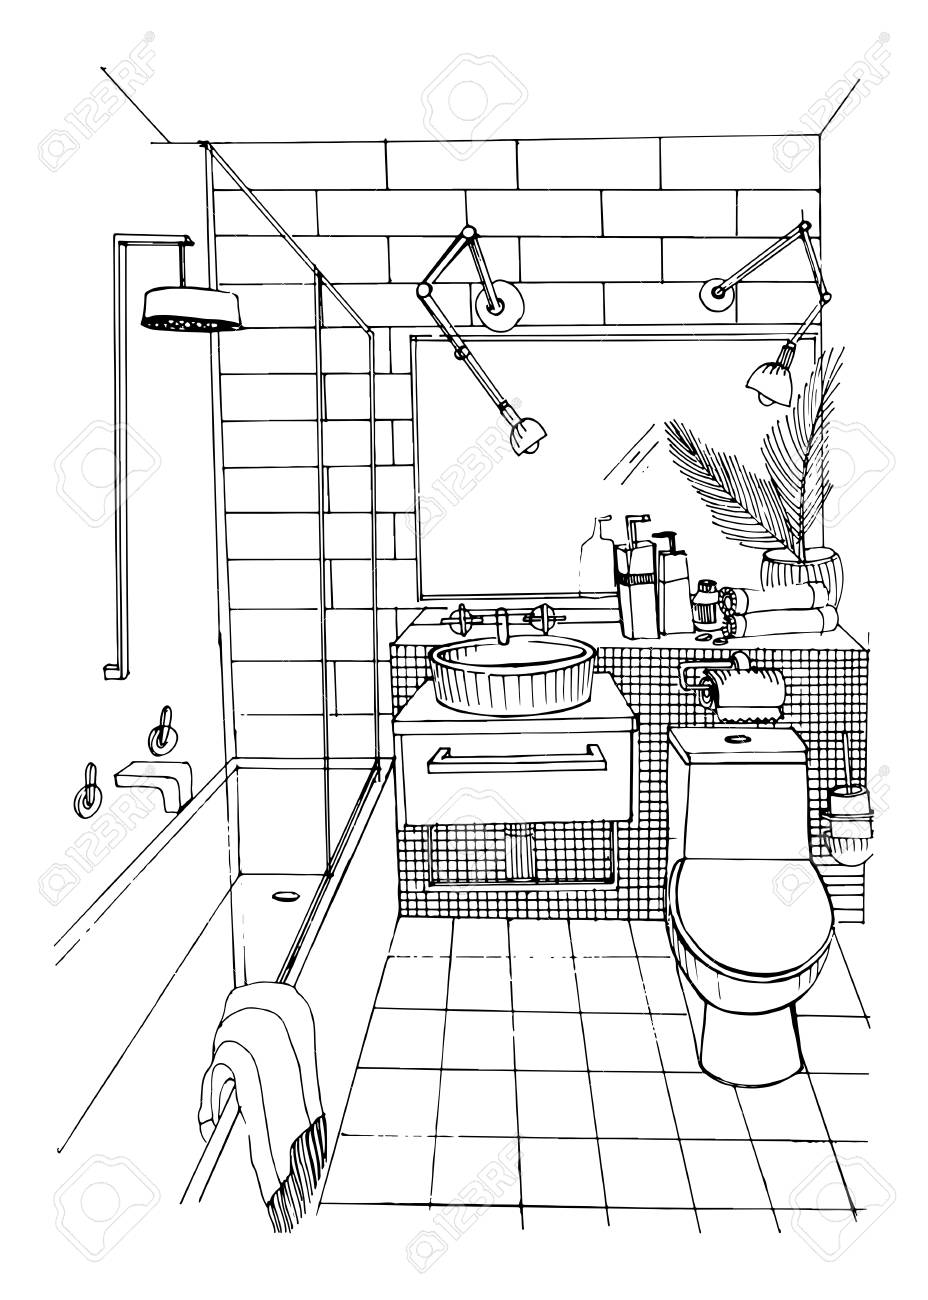 Hand Drawn Modern Bathroom Interior Design Vector Sketch Illustration Stock